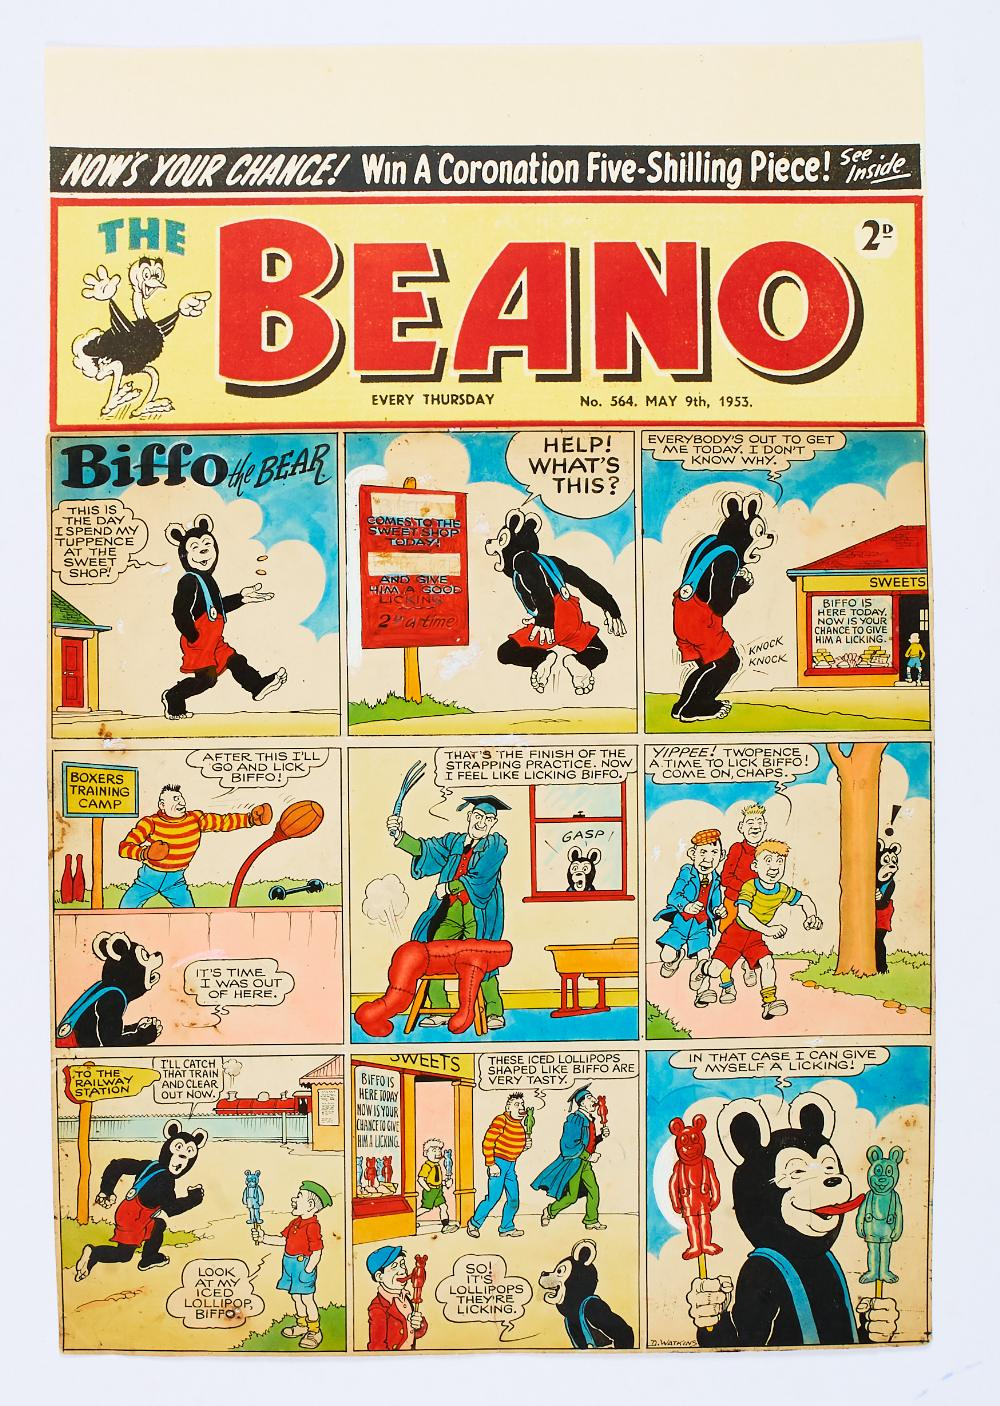 Lot 58 - Beano/Biffo the Bear original front cover artwork (1953) drawn, painted and signed by Dudley Watkins